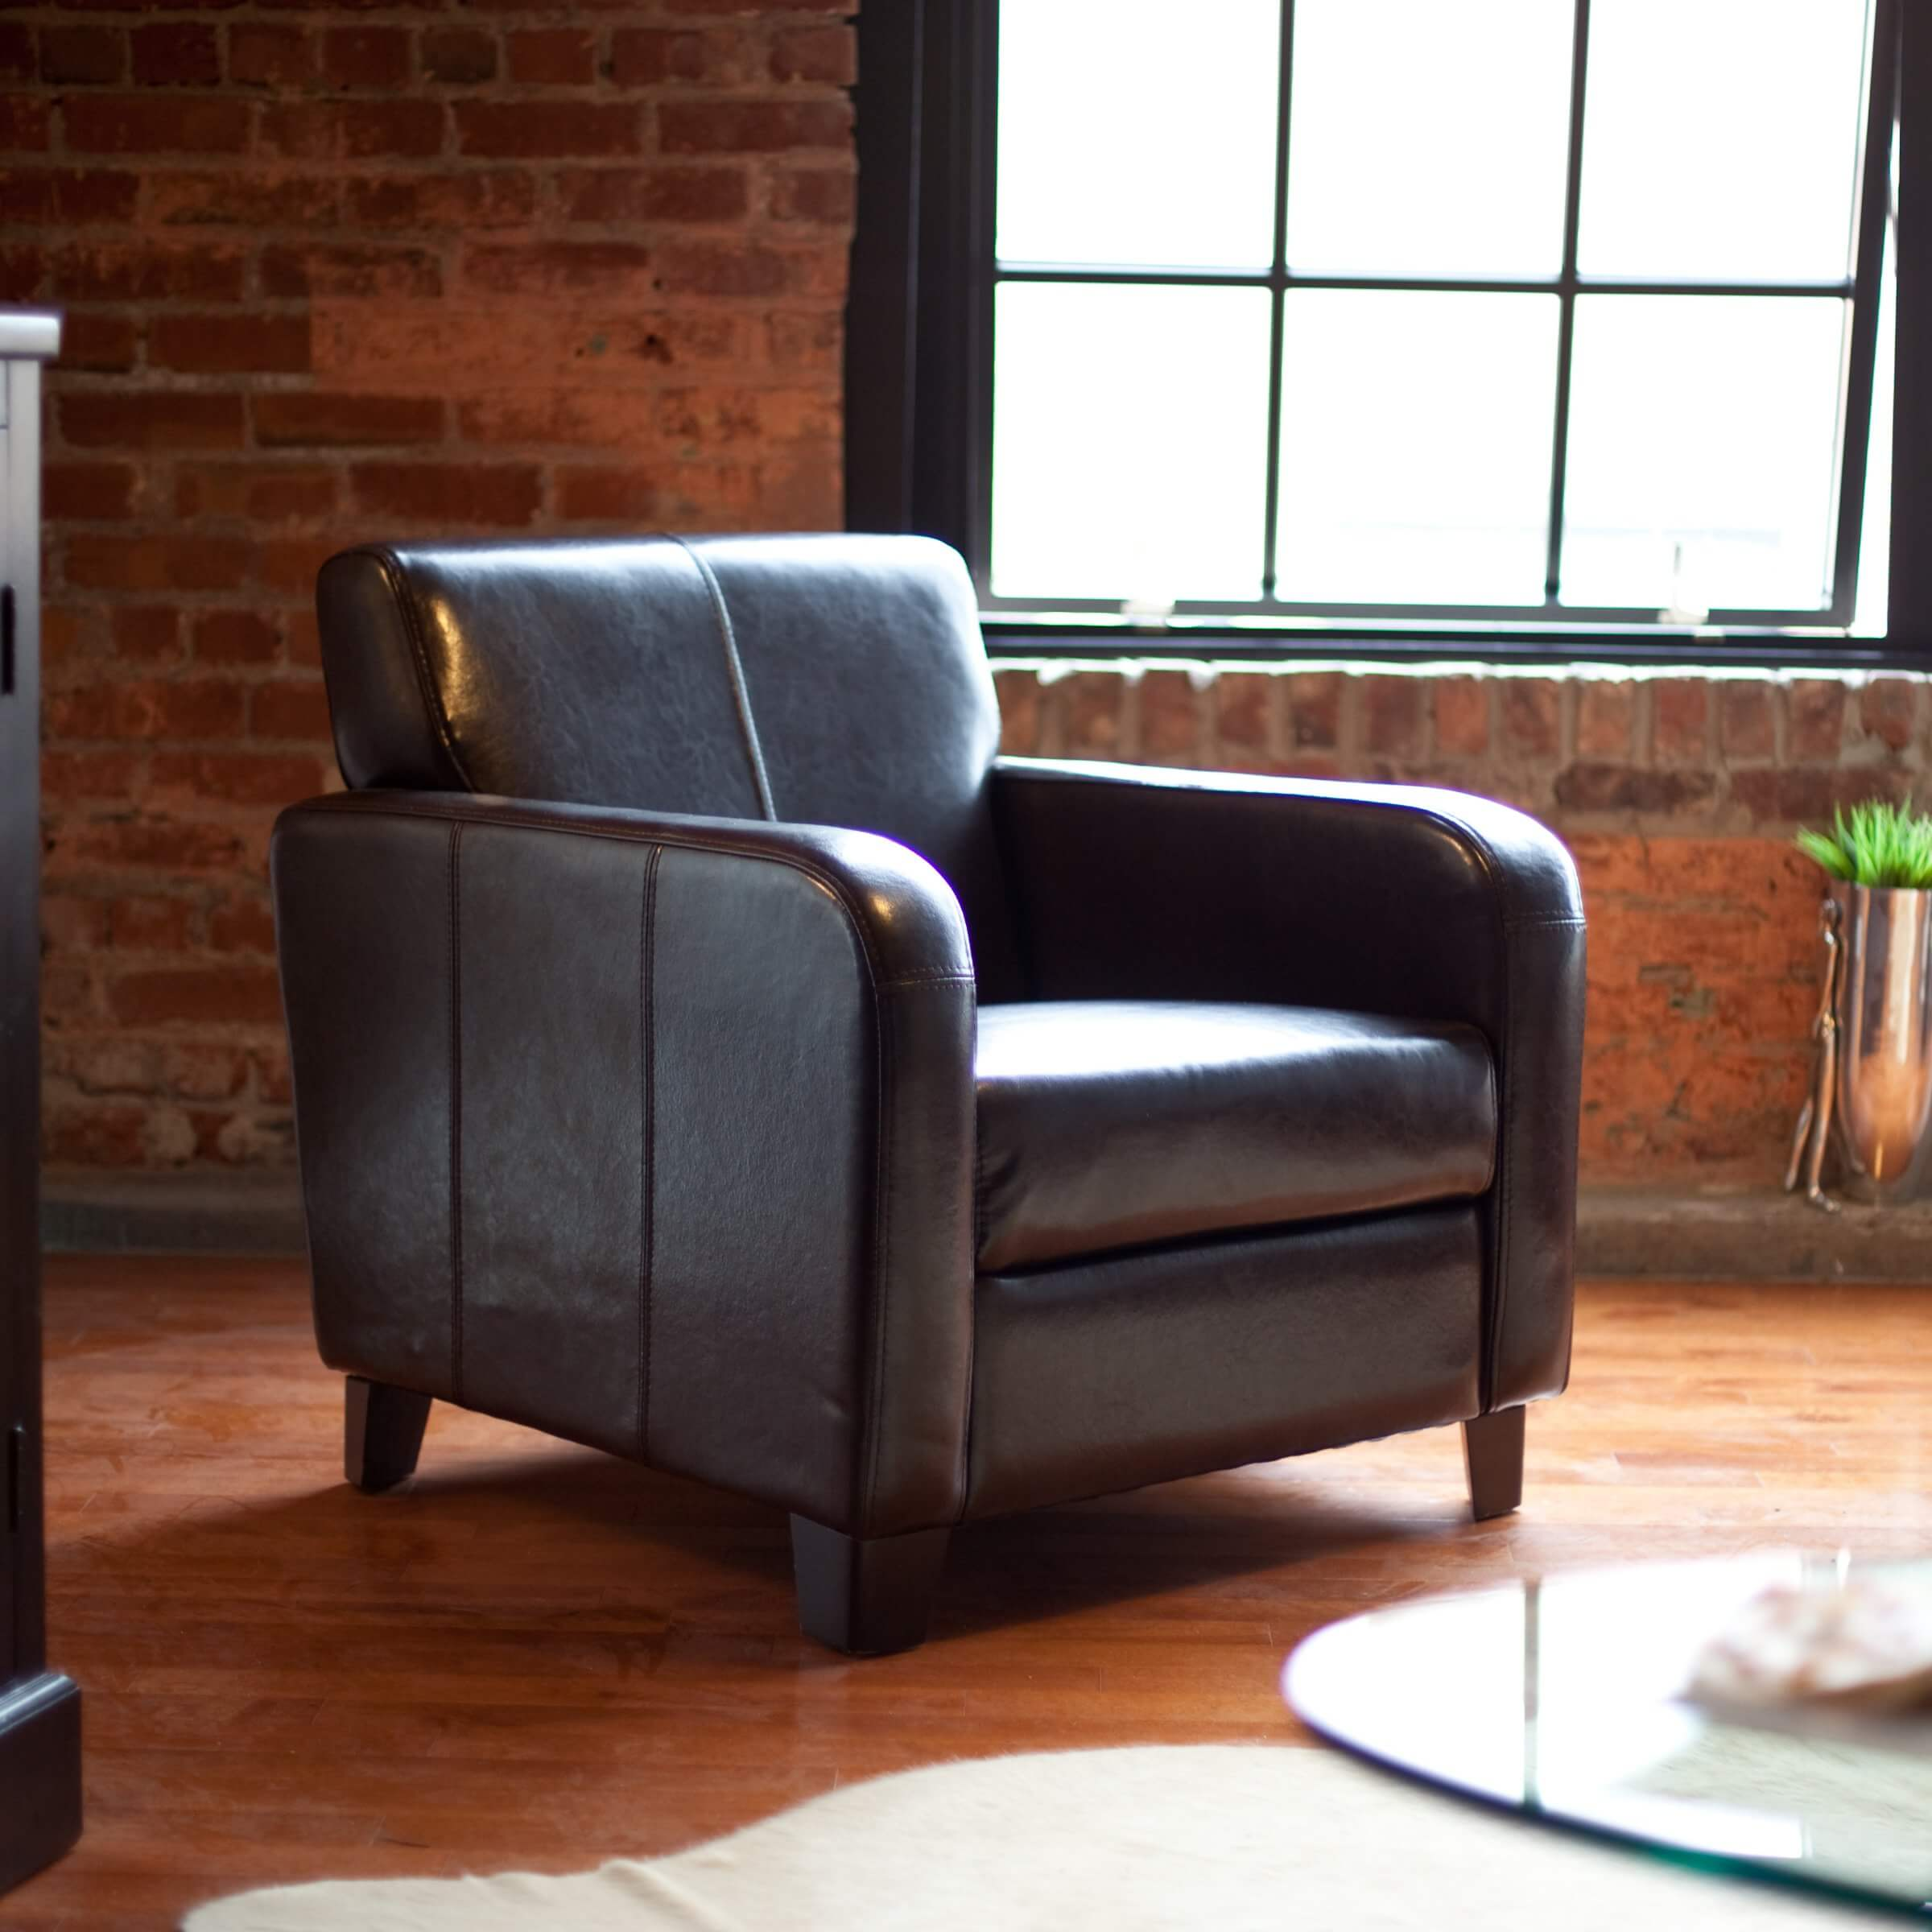 Our first club chair is a modern styled model in dark leather. The simple, clean lines of this design evoke a timeless appeal.